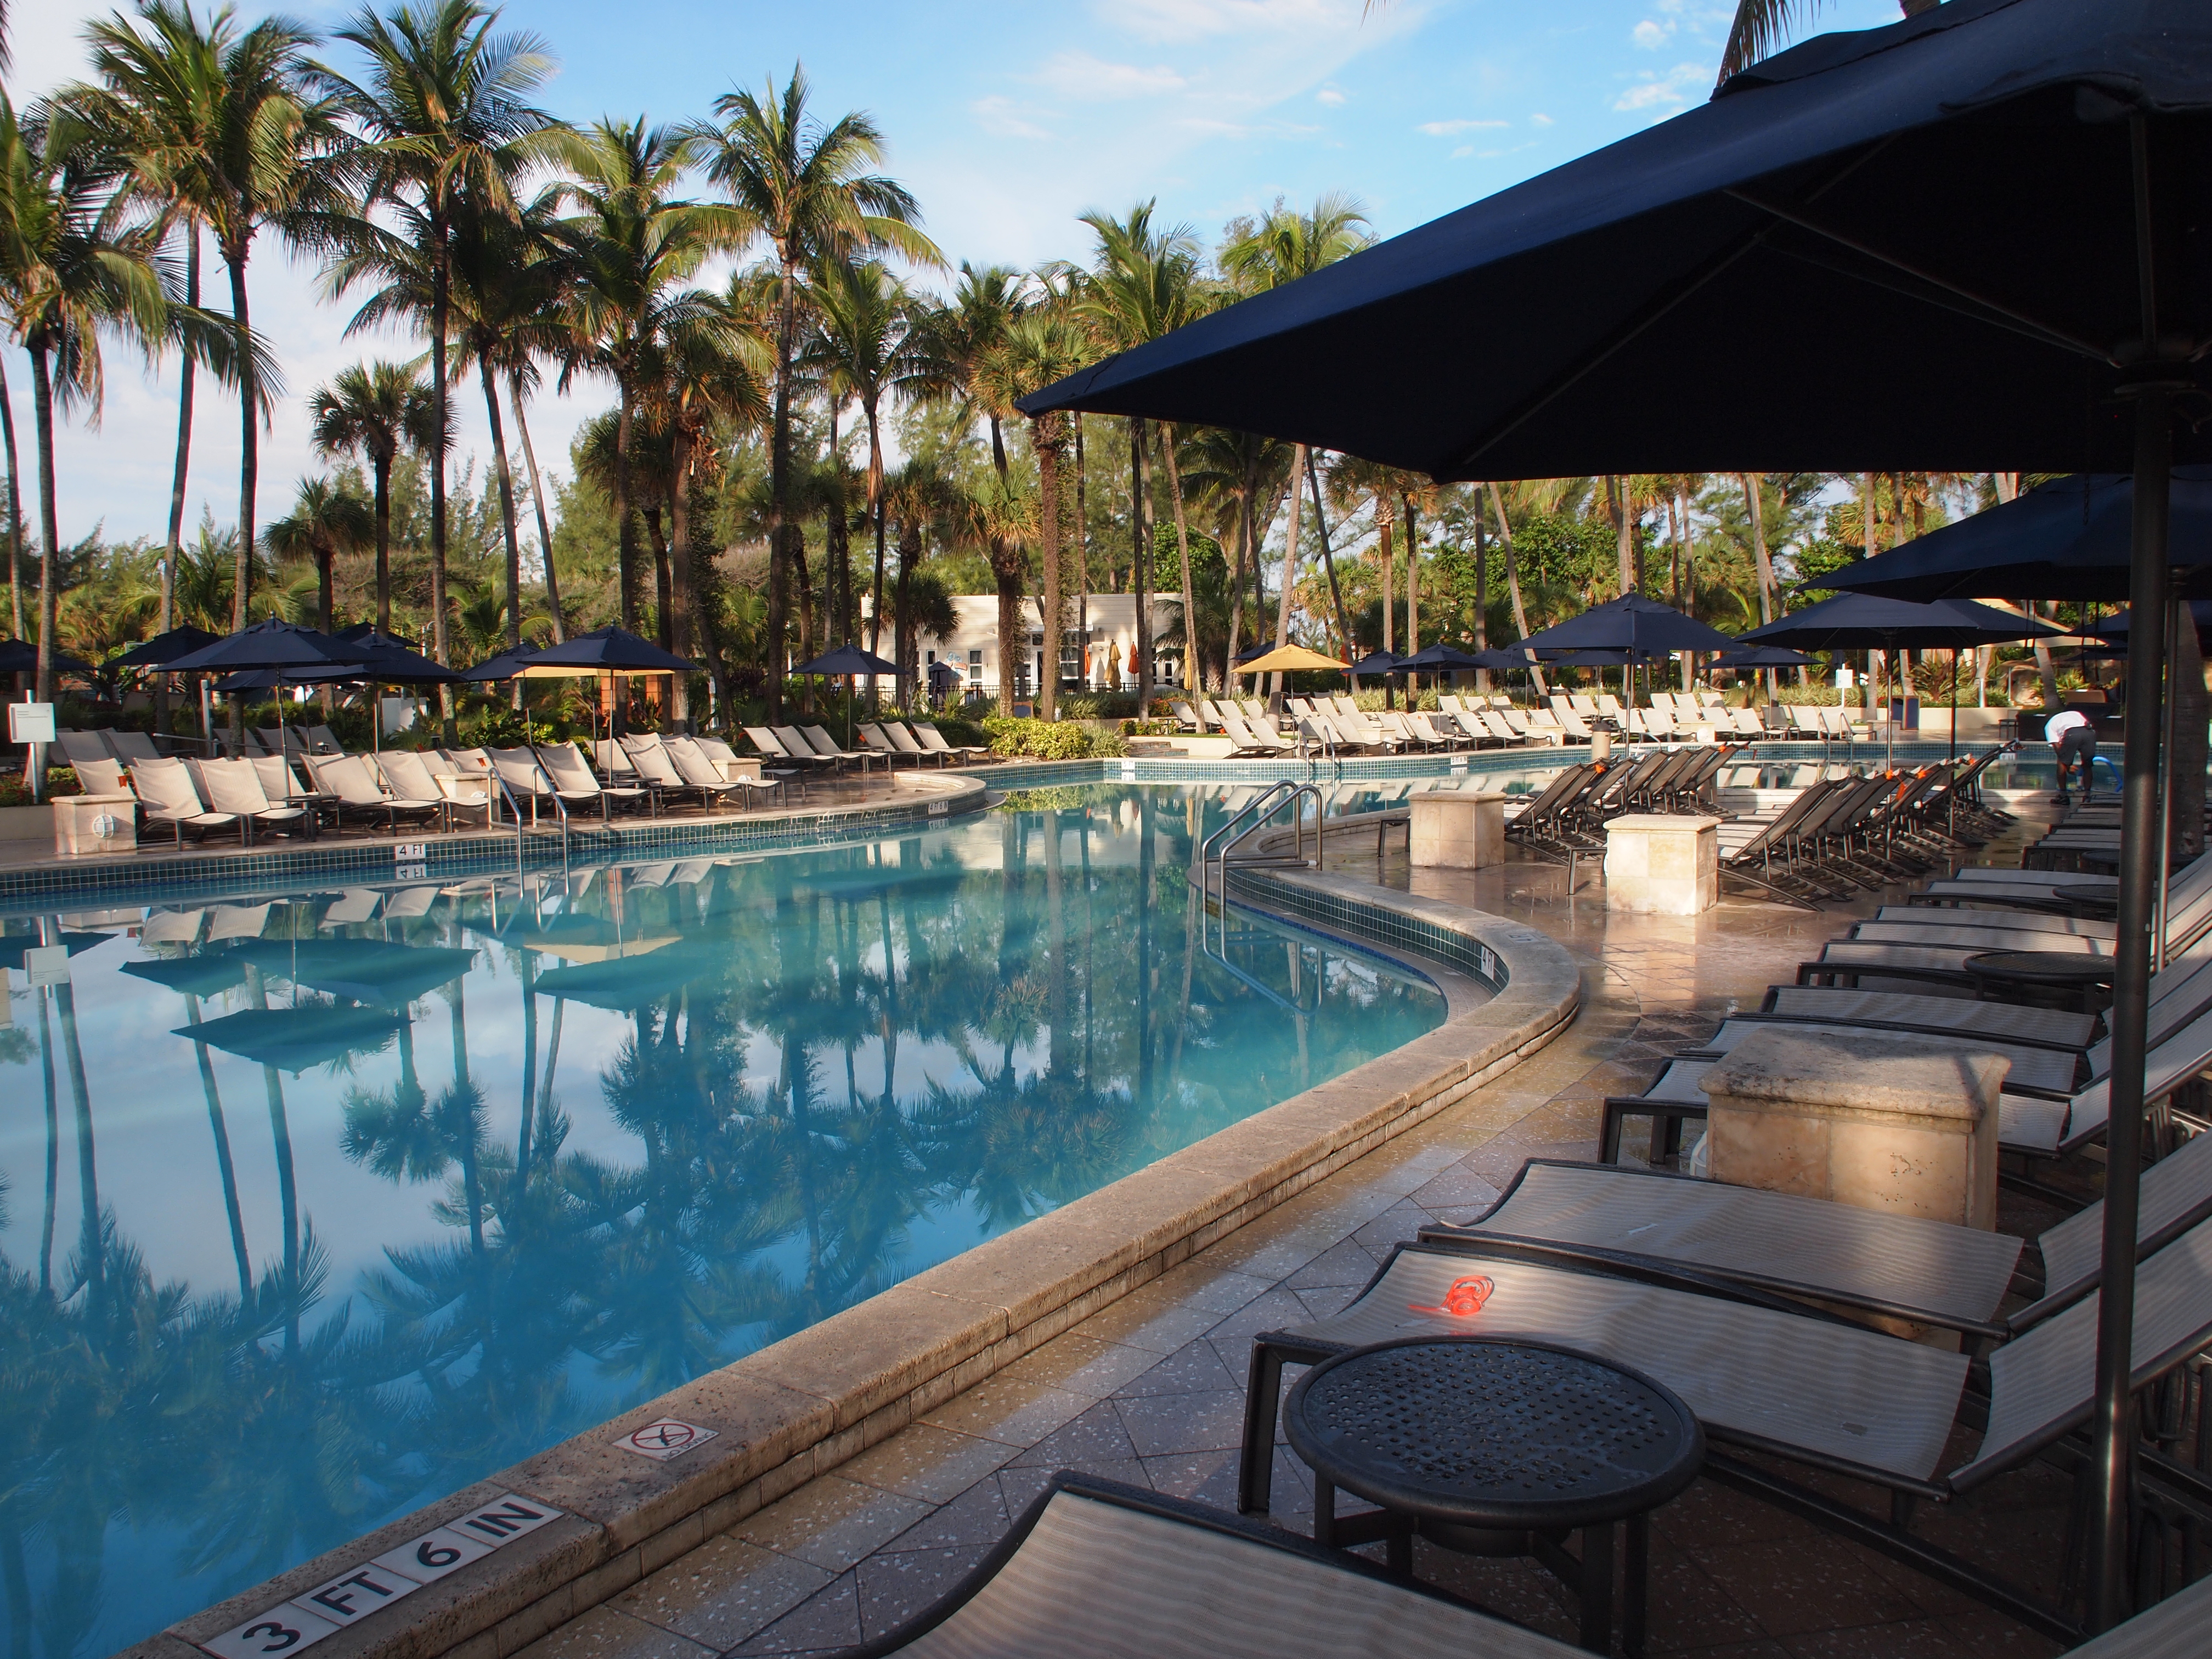 Tuesday Travel Tip: Make Summer Last Hotel Deal in Fort ...